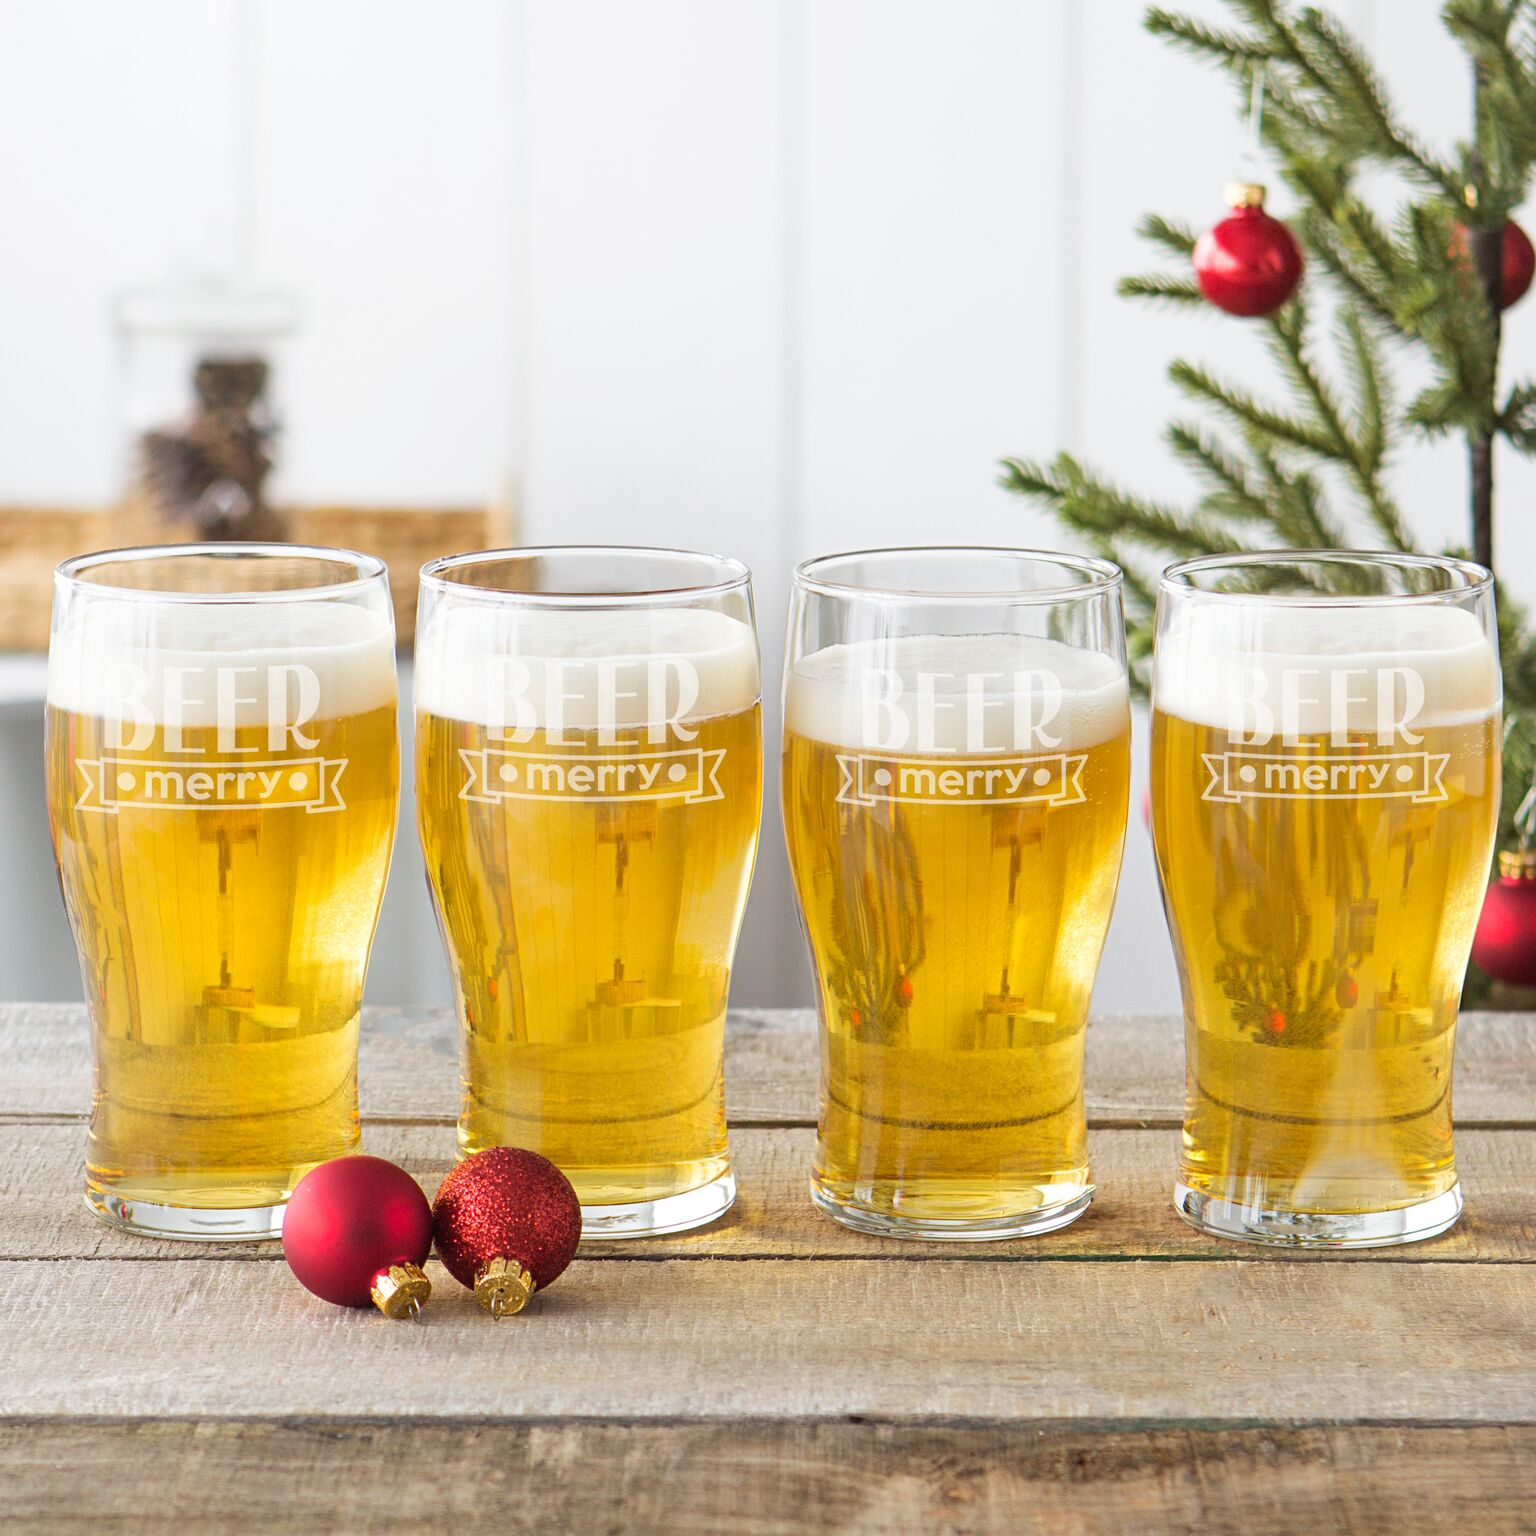 Cathys Concepts H17-4115-4 19 oz Beer Merry Pilsner Glasses